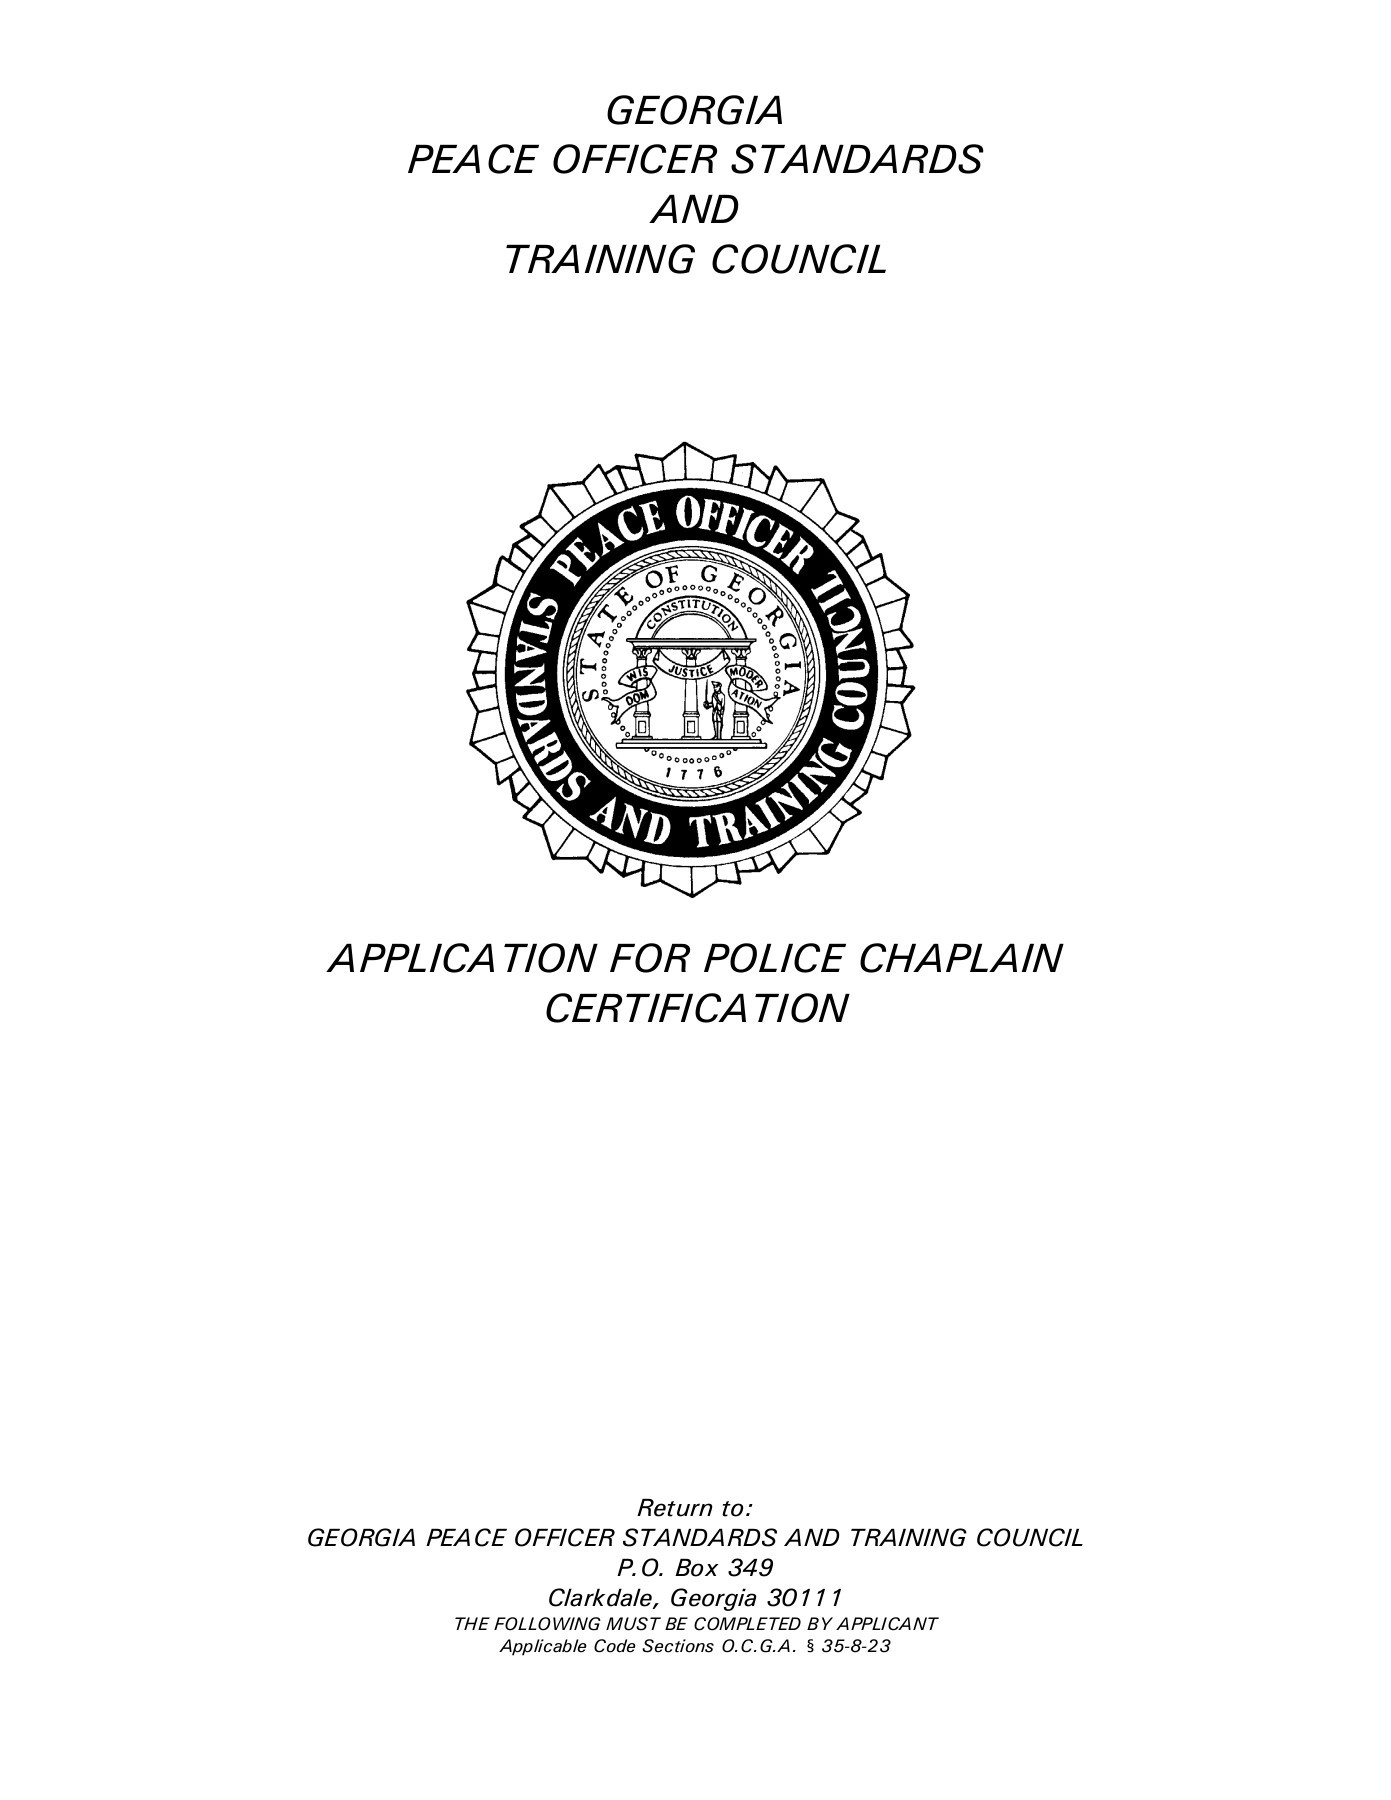 GEORGIA PEACE OFFICER STANDARDS AND TRAINING COUNCIL | FlipHTML5